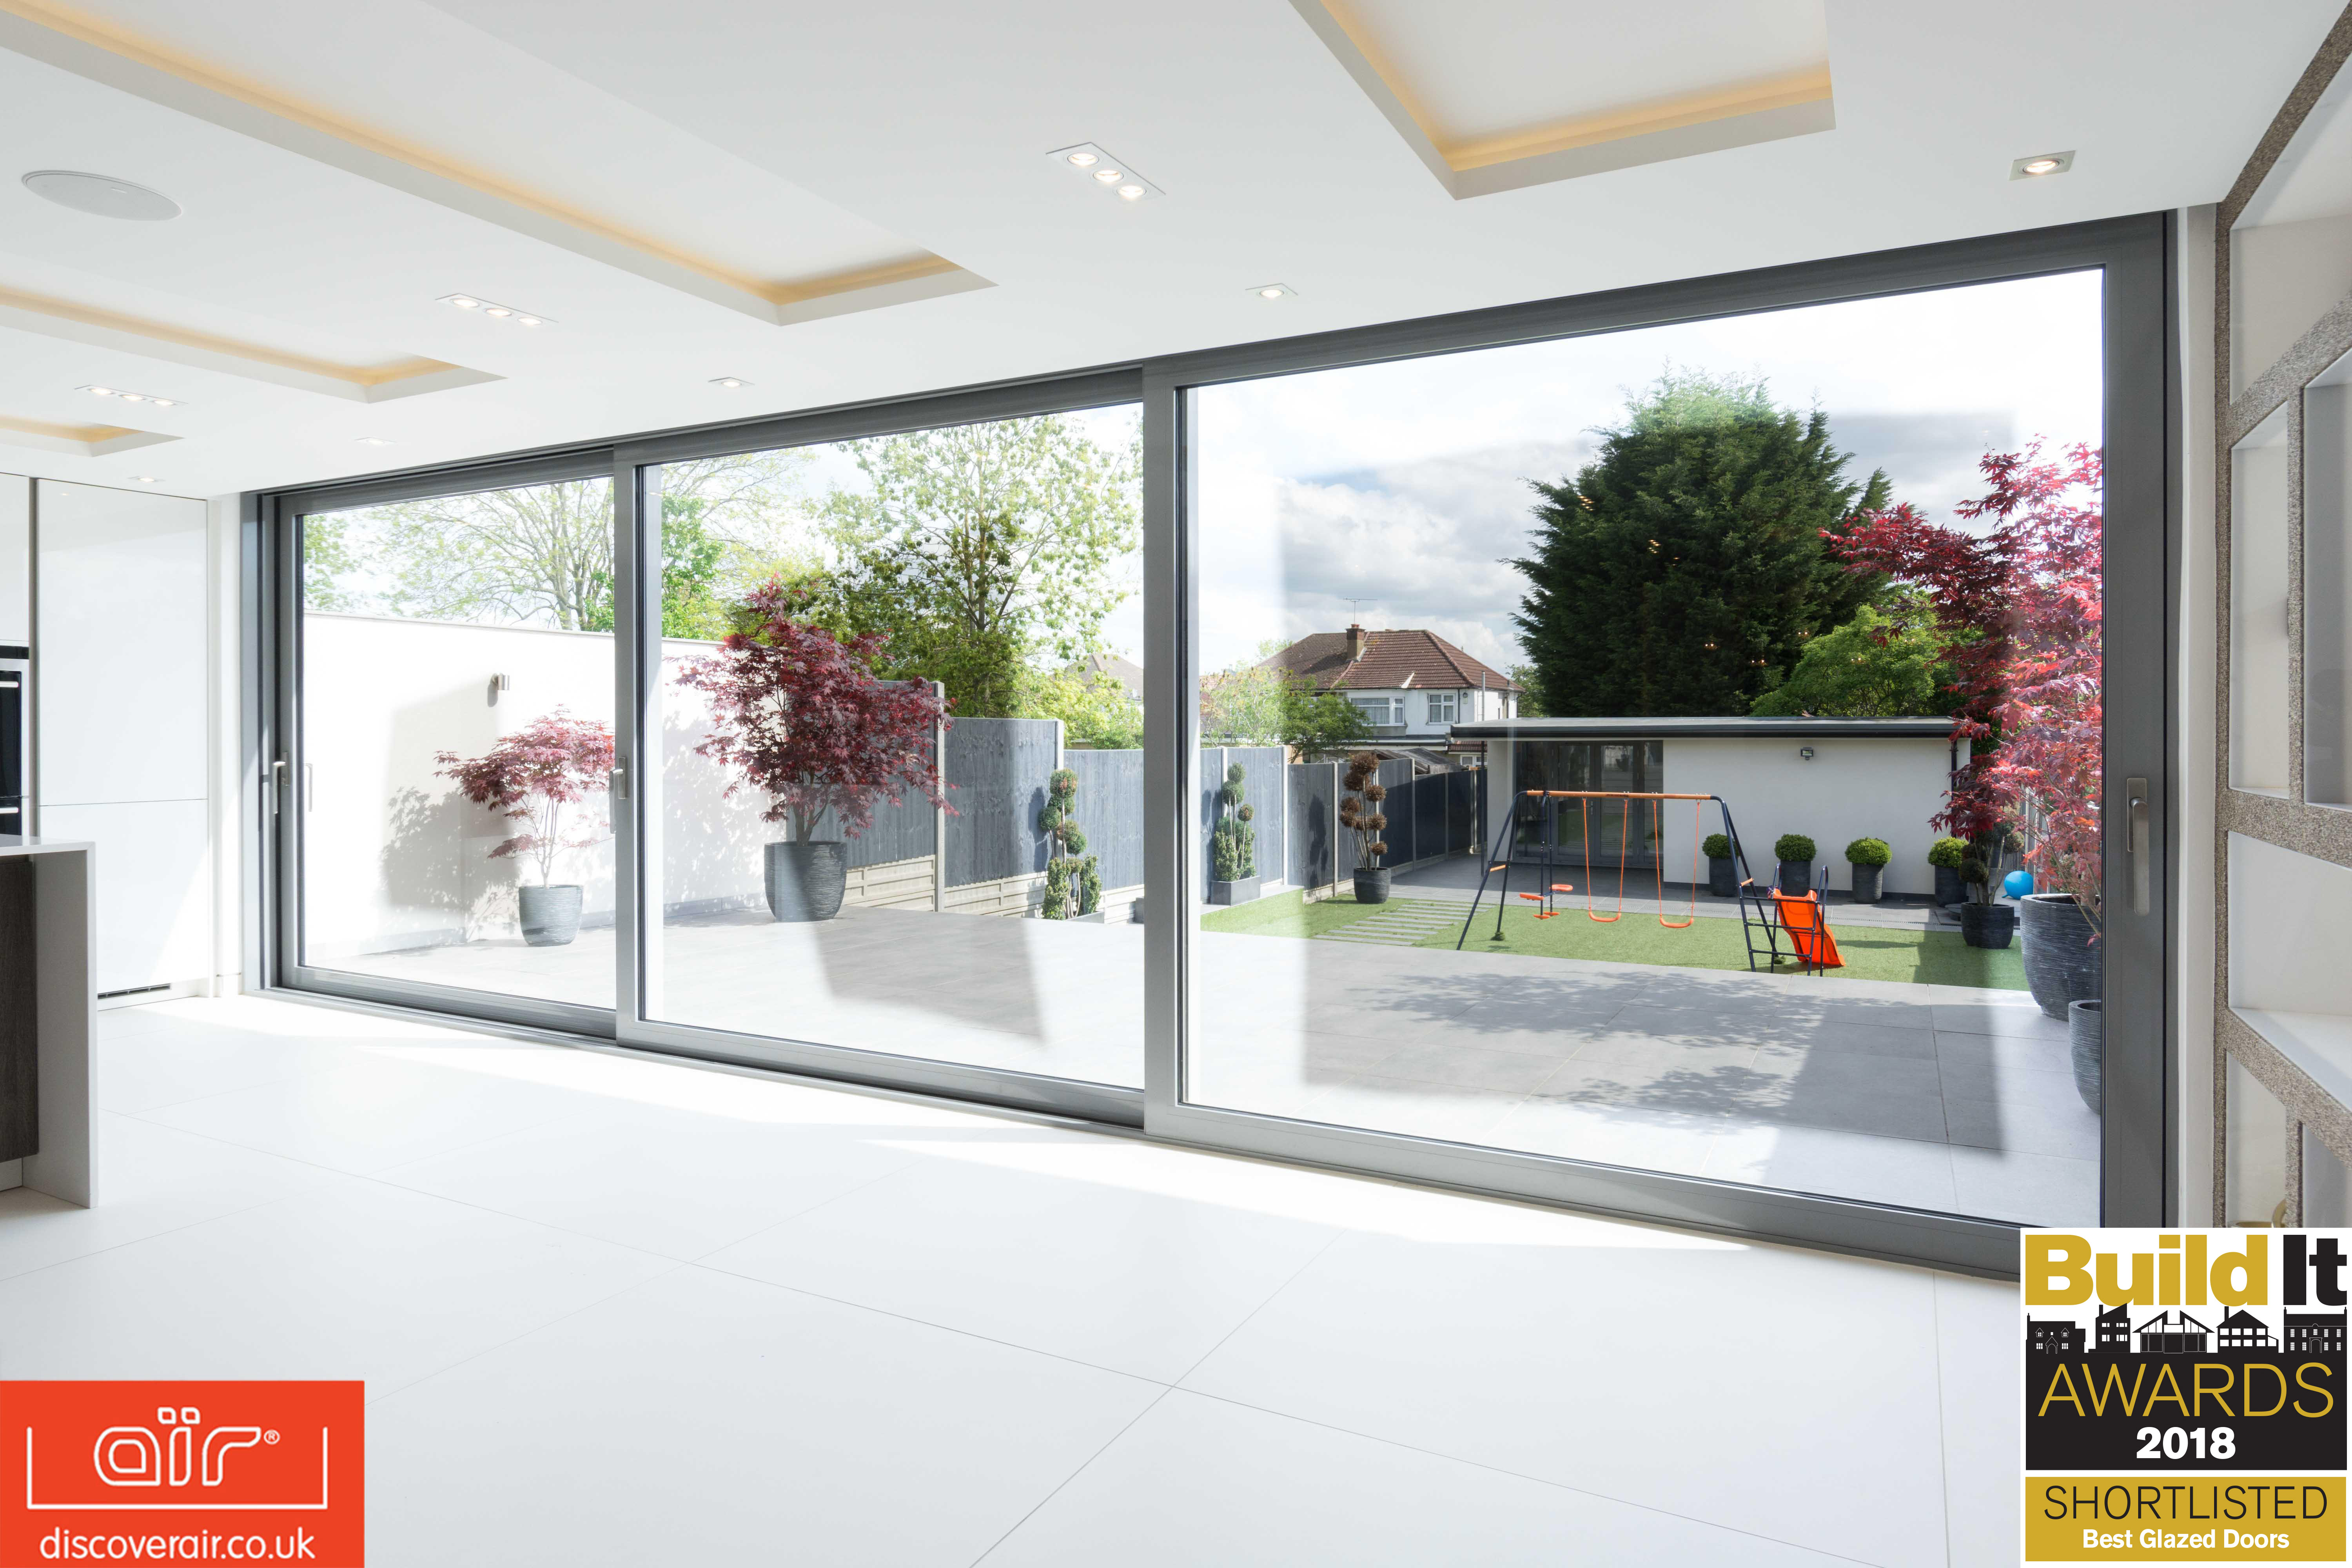 air 600LS has been named a finalist for best glazed doors